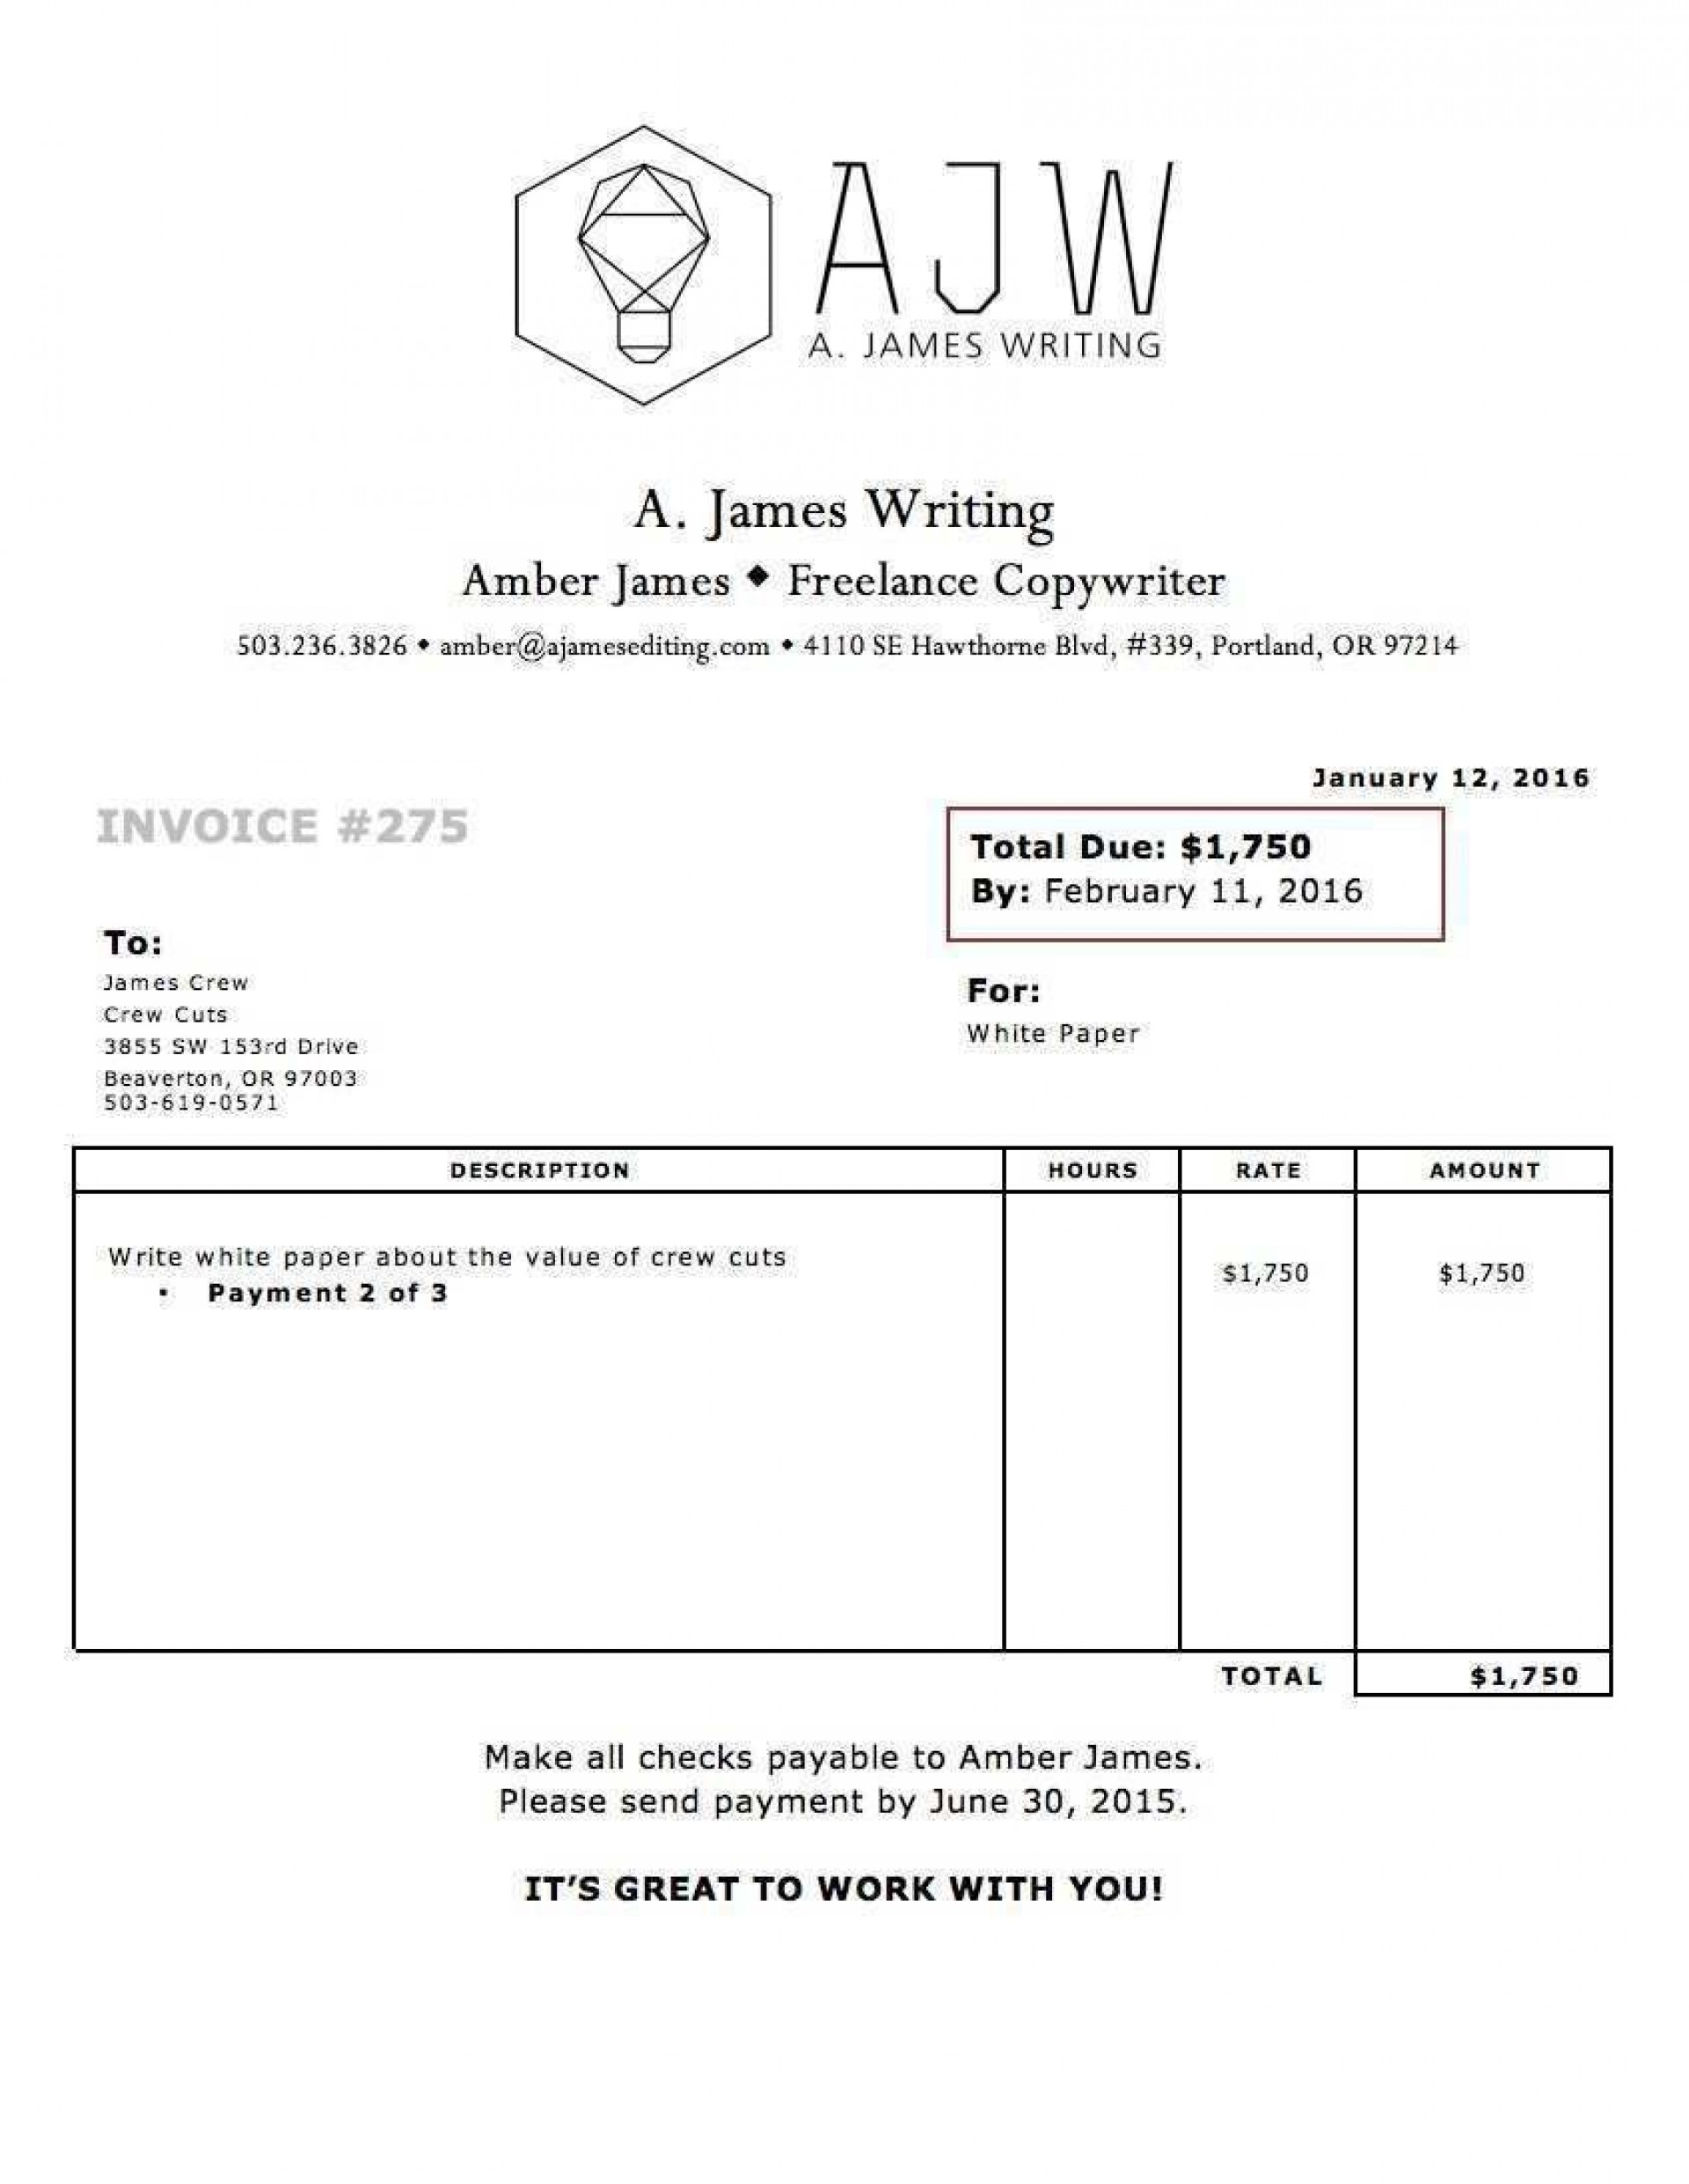 002 Impressive Invoice Template Uk Freelance Picture  Example Sample Word1920